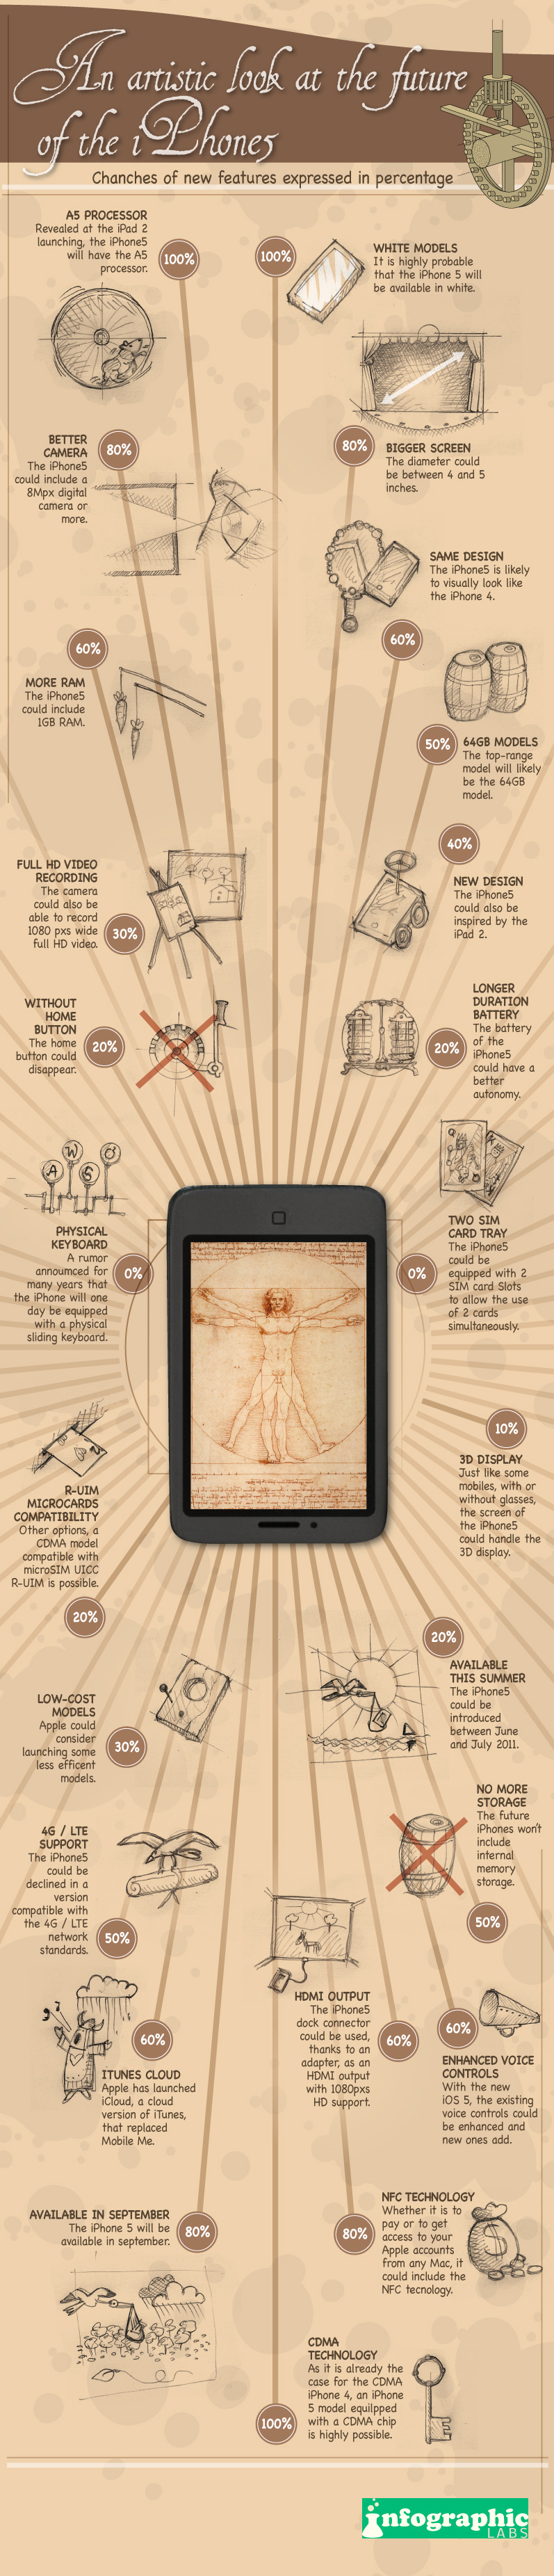 An artistic look at the iPhone 5 rumor mill [Infographic]